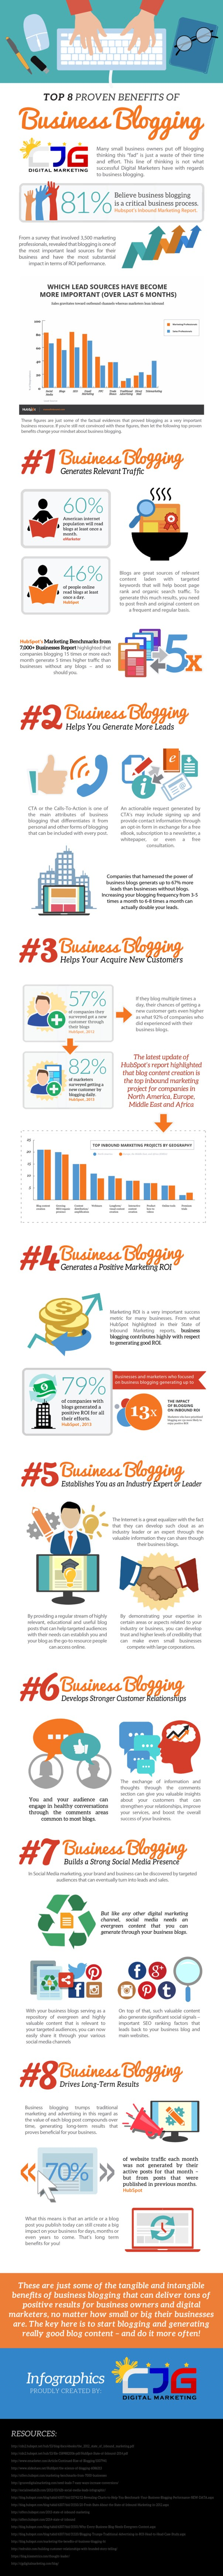 Top-8-Proven-Benefits-of-Business-Blogging